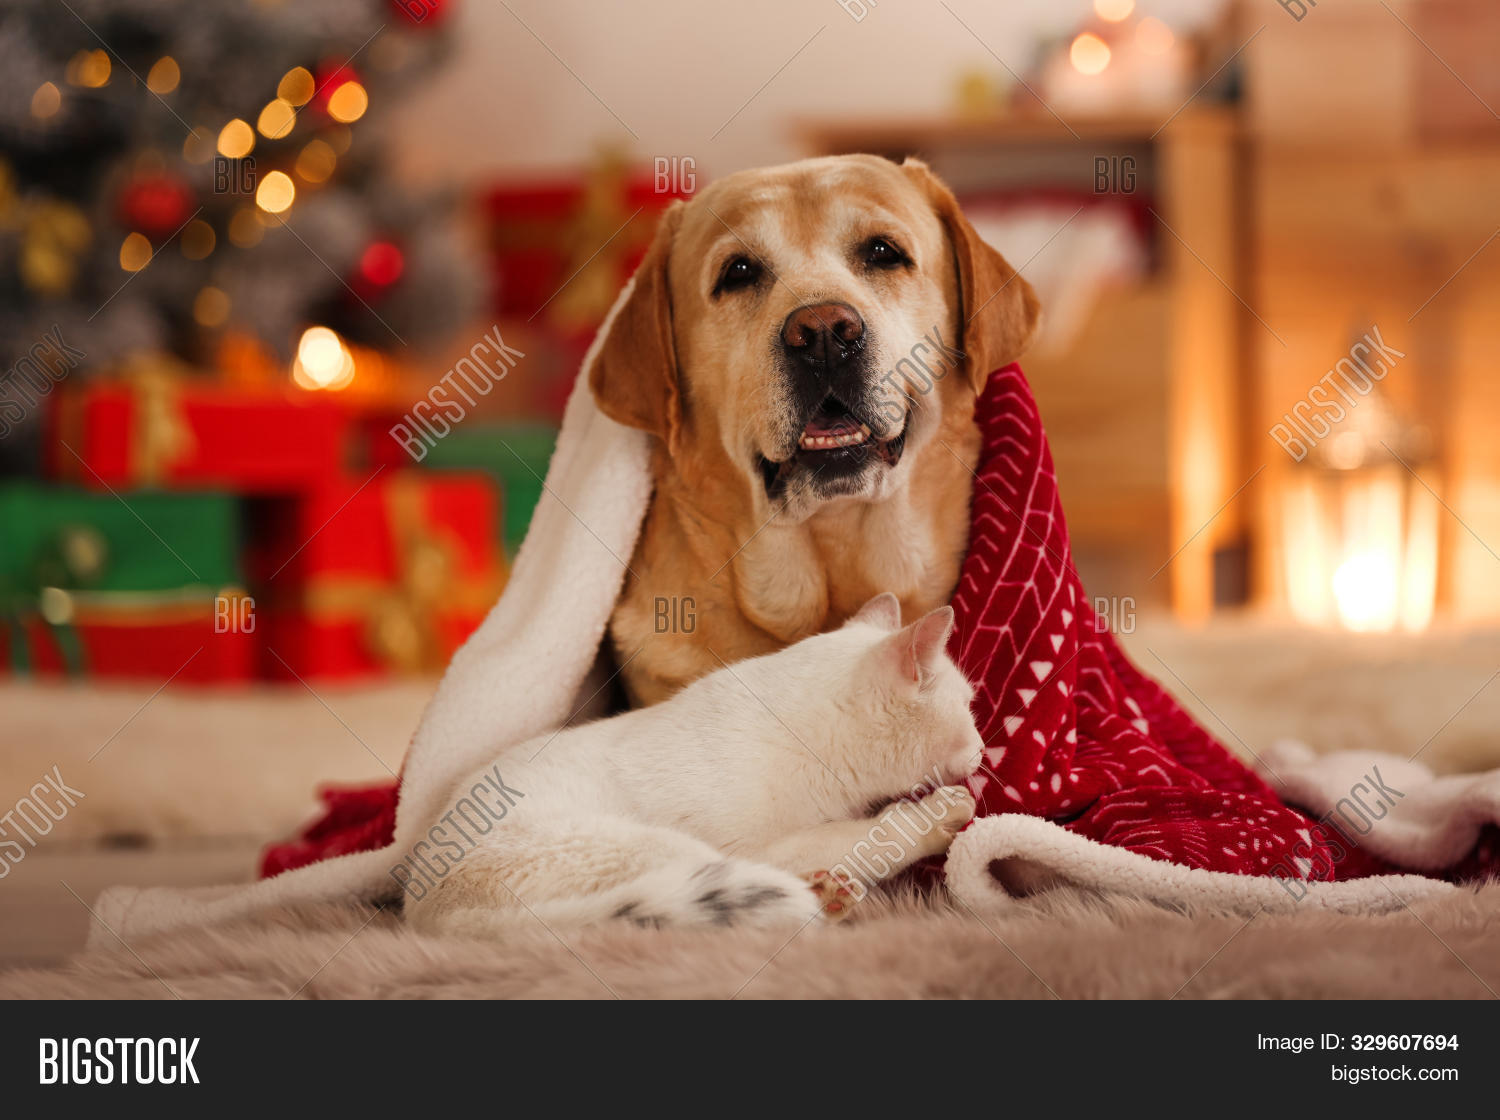 Adorable Dog Cat Image Photo Free Trial Bigstock